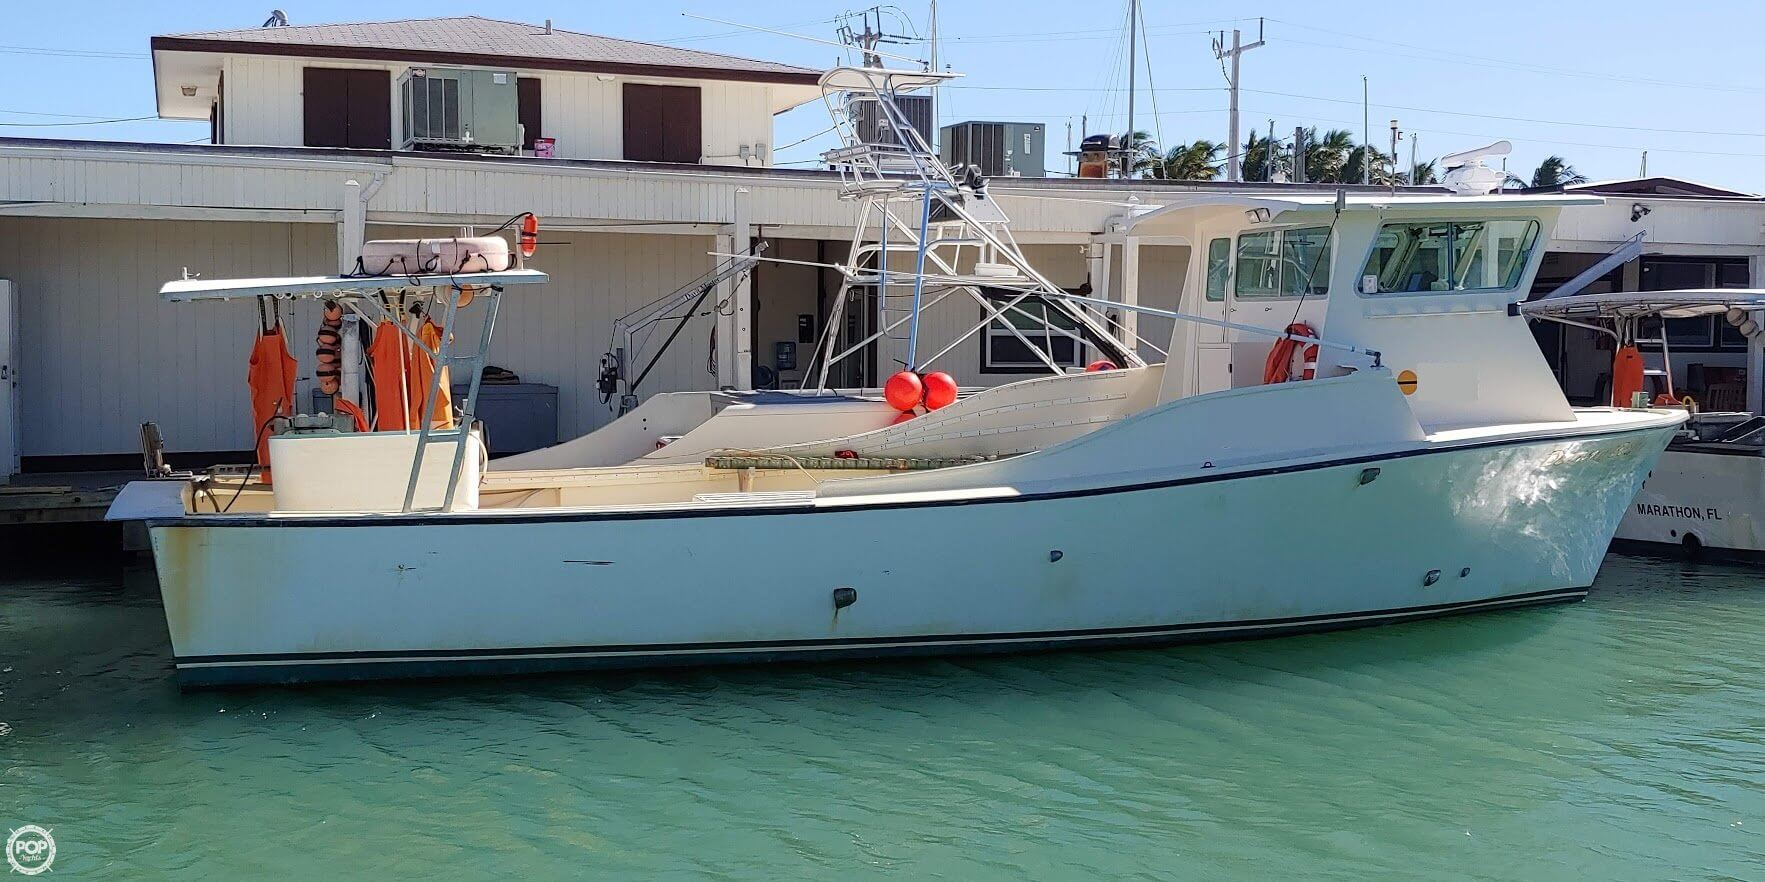 Lobster Boats For Sale >> Torres 43 Yacht For Sale In Marathon Fl For 221 200 164537